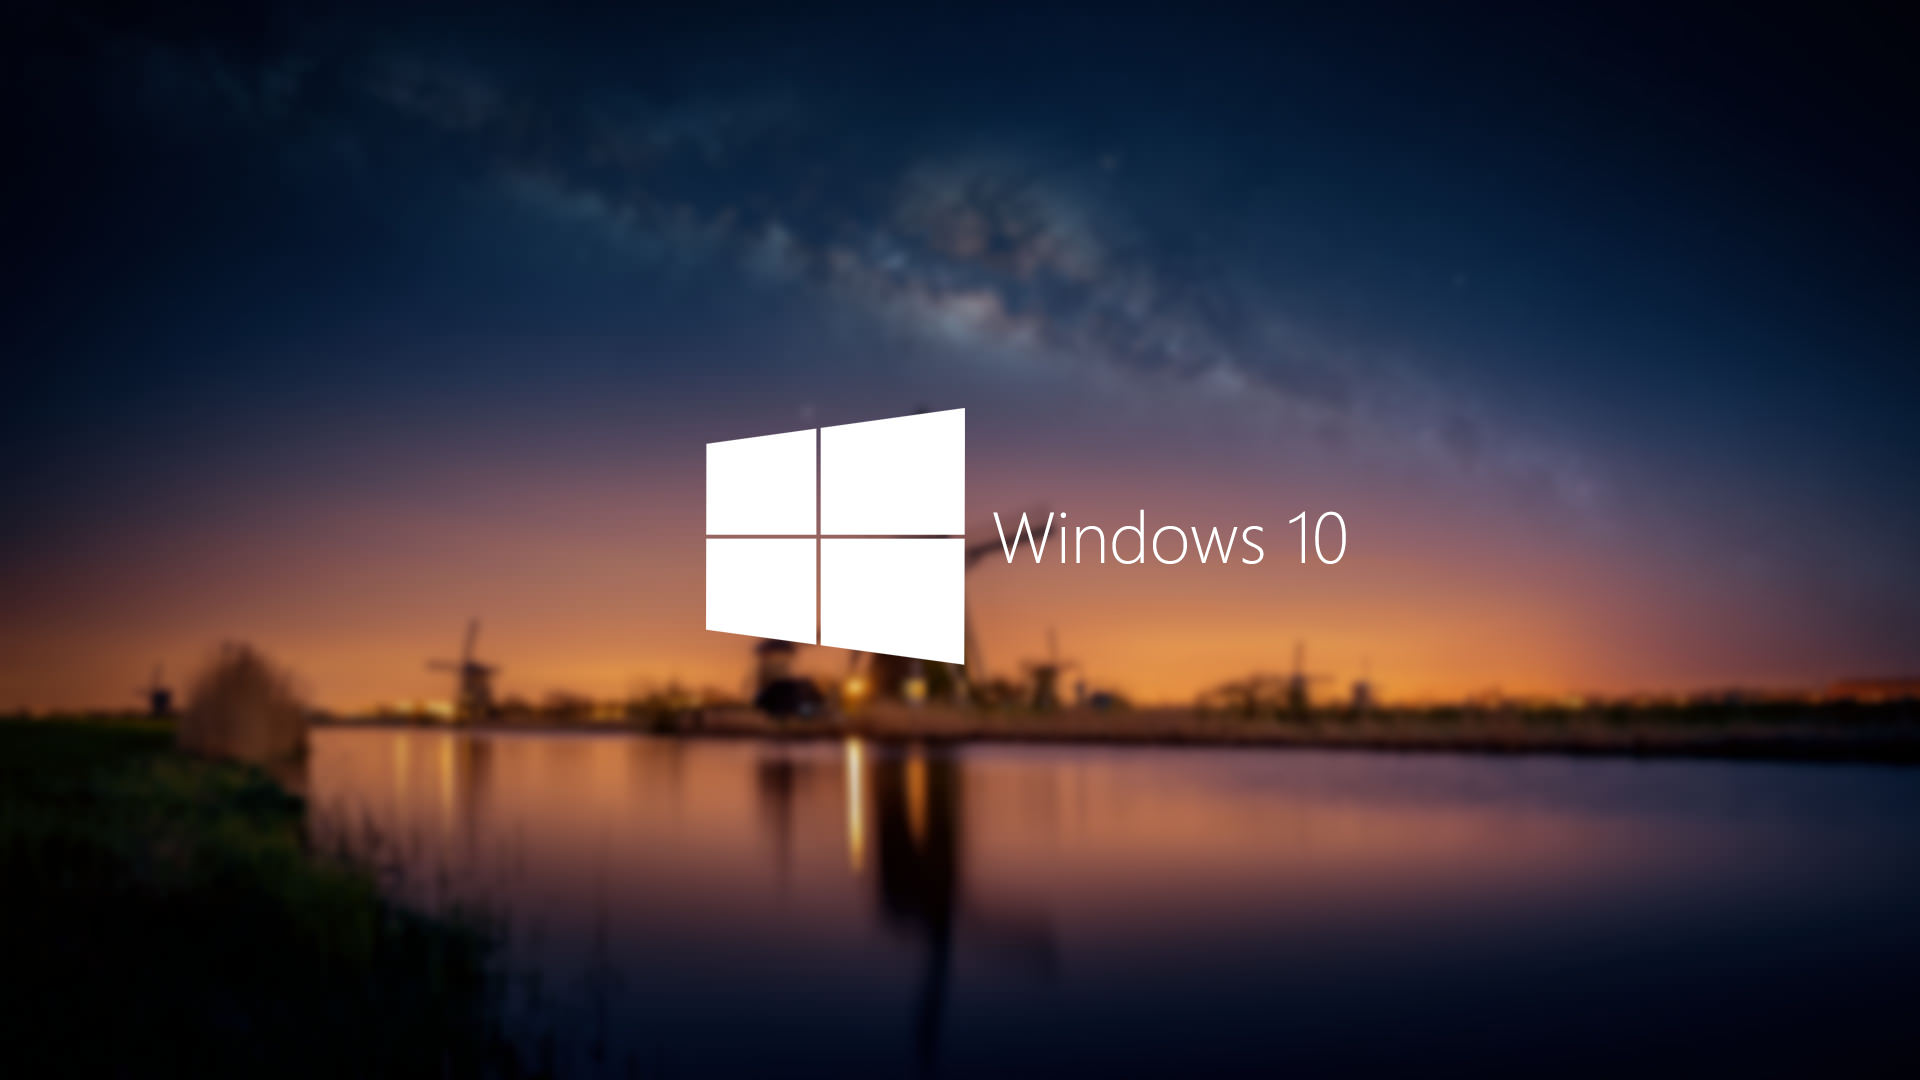 1440x900 High Res Wallpaper: 22+ Windows 10 Wallpapers, Backgrounds, Images